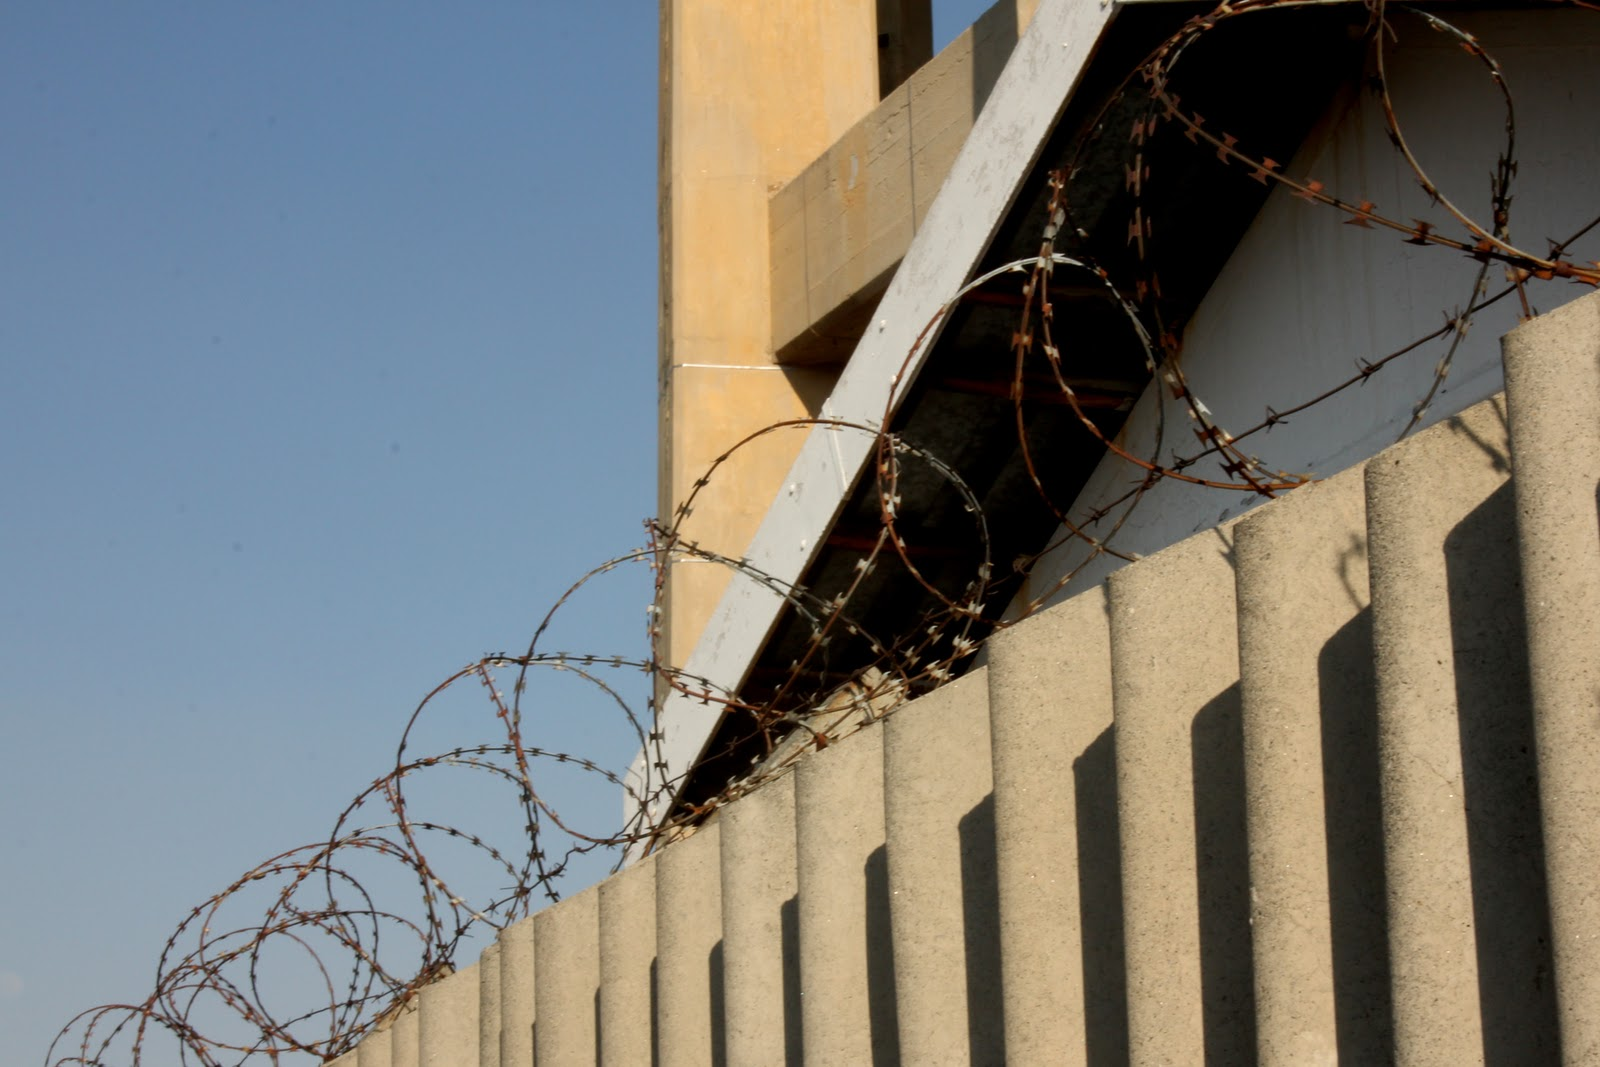 Joburg every day: Barbed wire and concrete